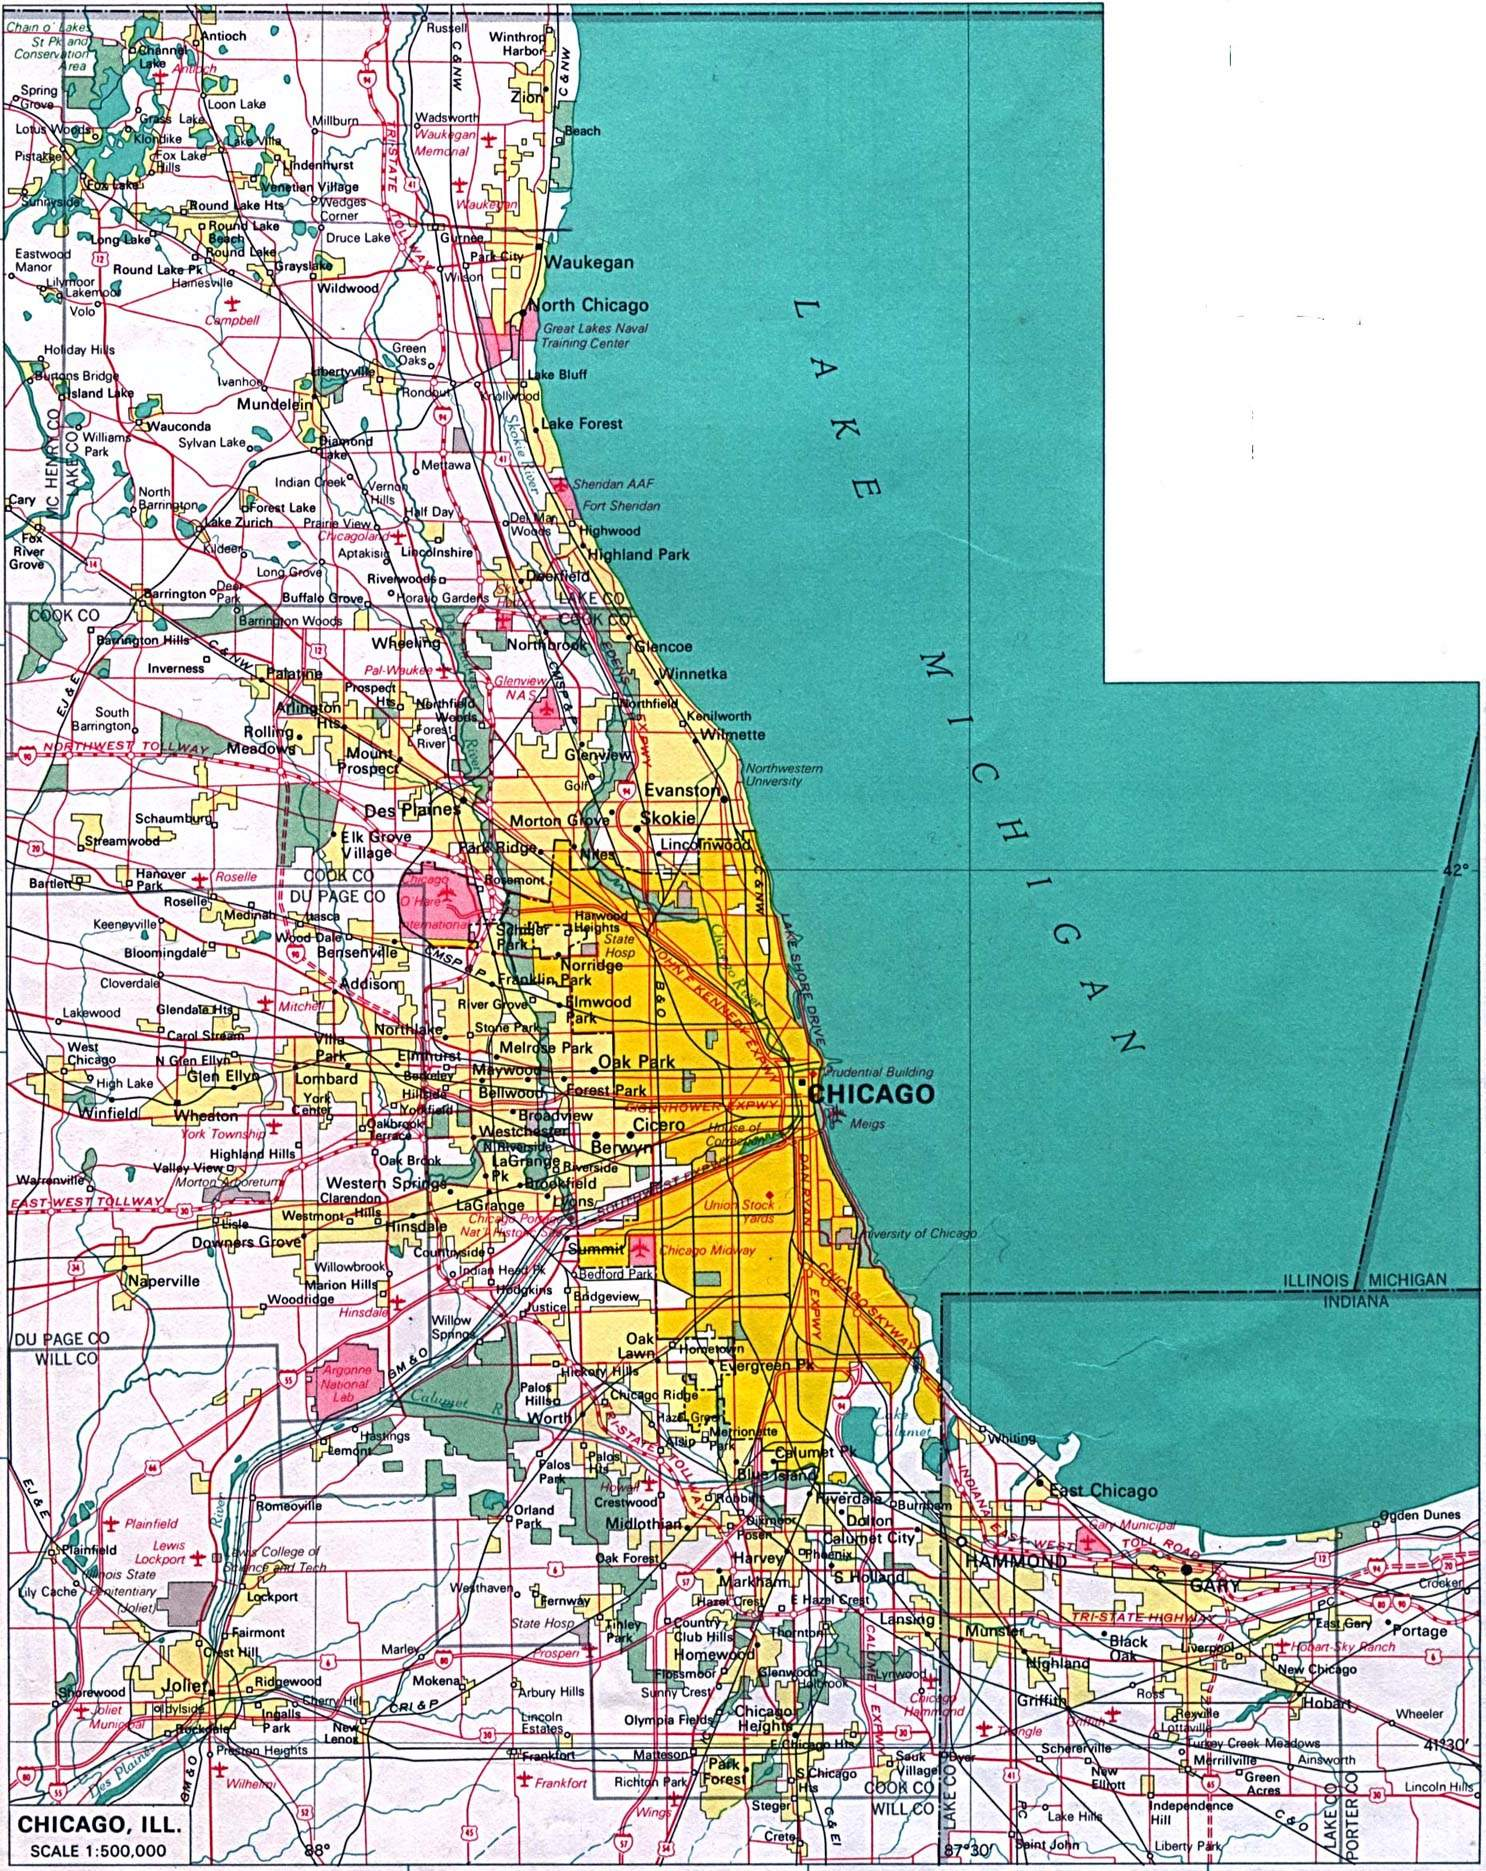 Printable Map Of Chicago Large Chicago Maps for Free Download and Print | High Resolution